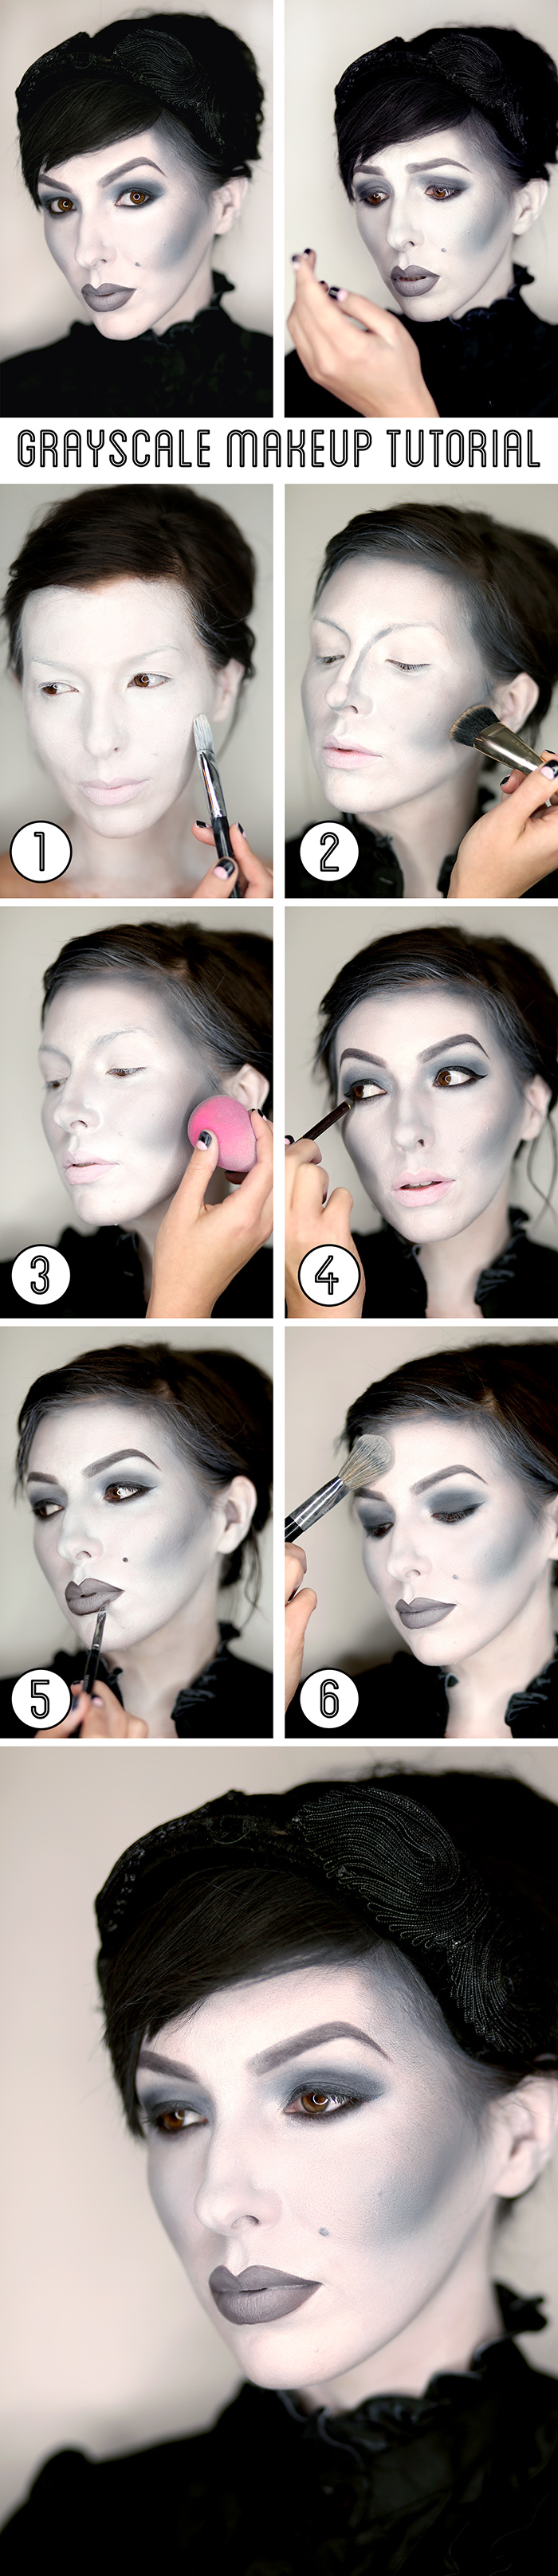 Grayscale makeup tutorial for halloween keiko lynn halloween black and white grayscale makeup tutorial baditri Gallery